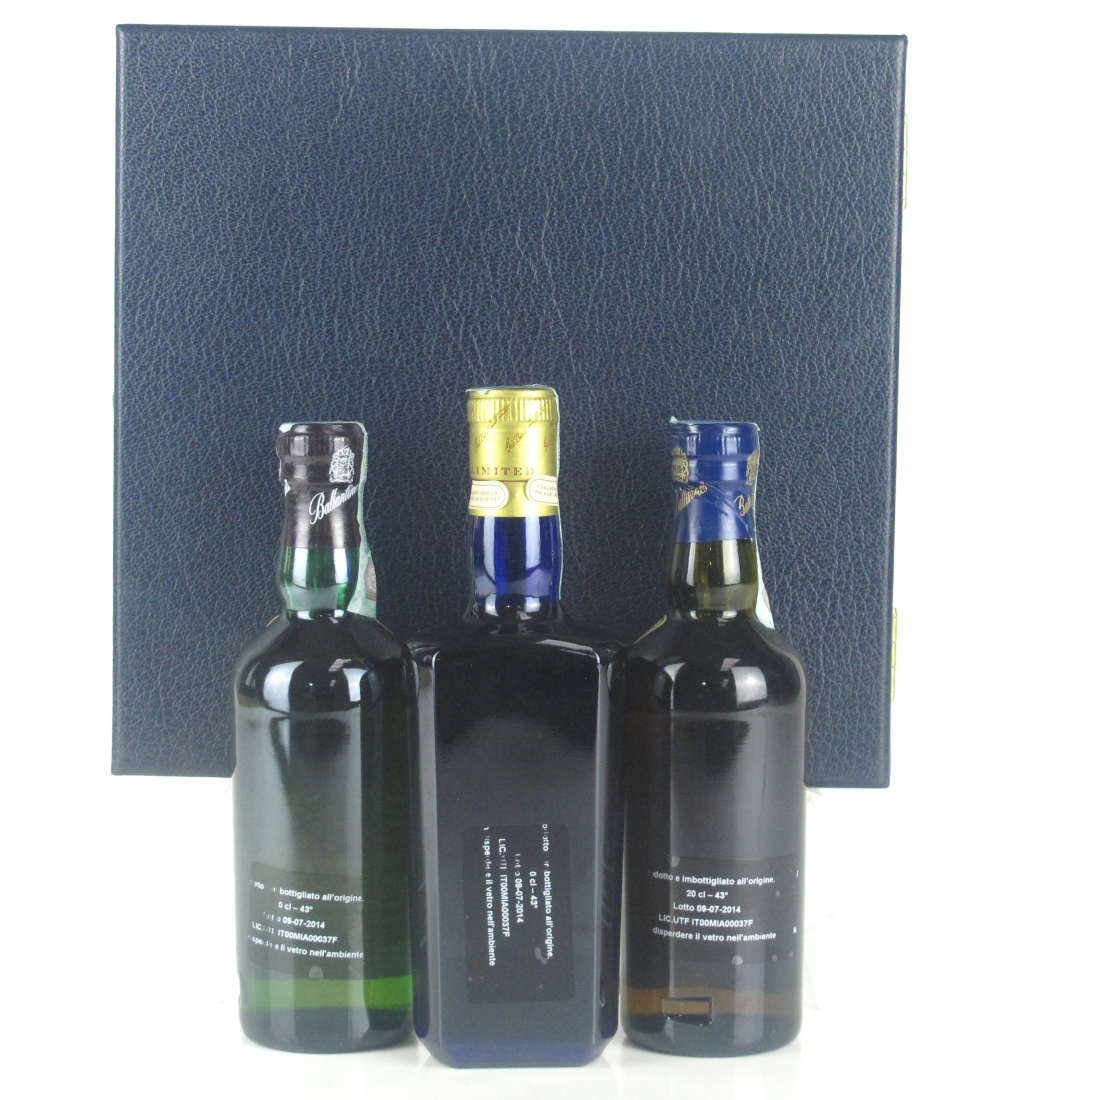 Ballantine's Premium Collection 3 x 20cl / 17, 21 and Limited